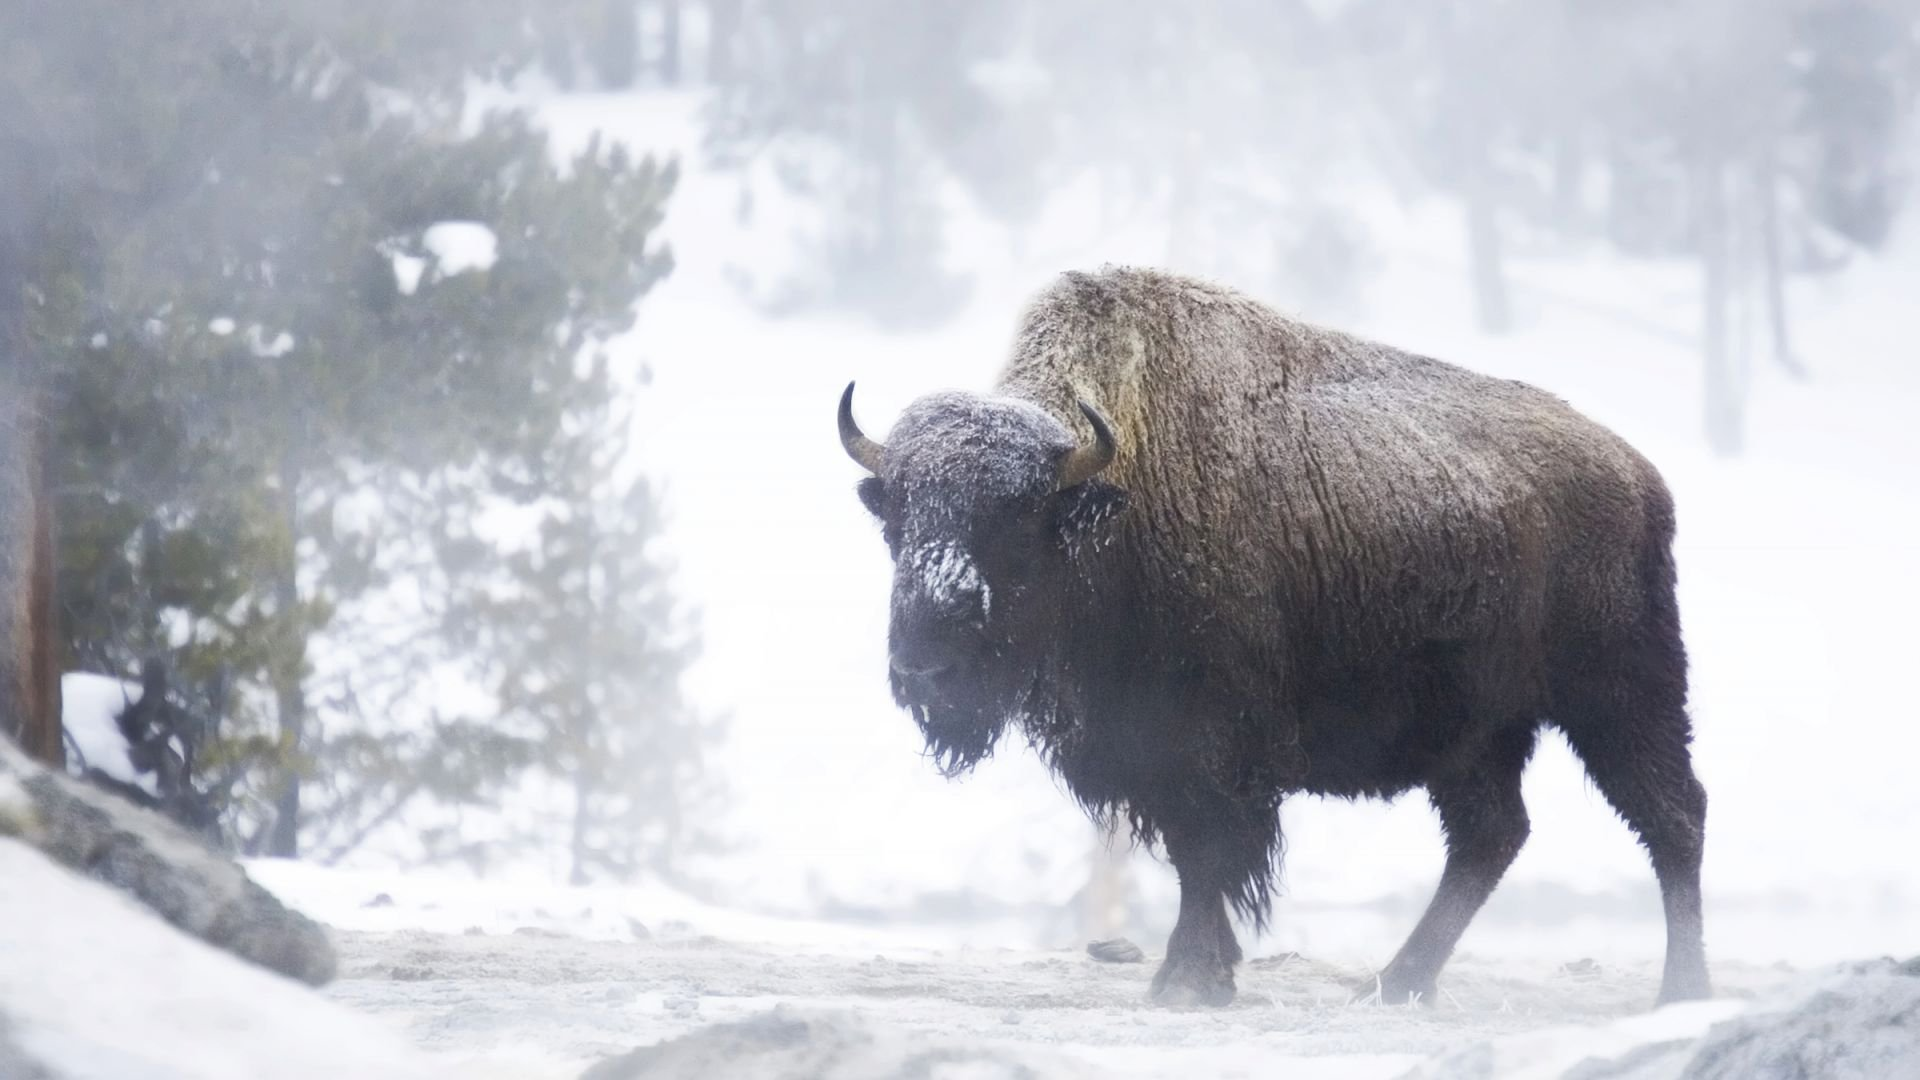 21 Excellent Hd Bison Wallpapers